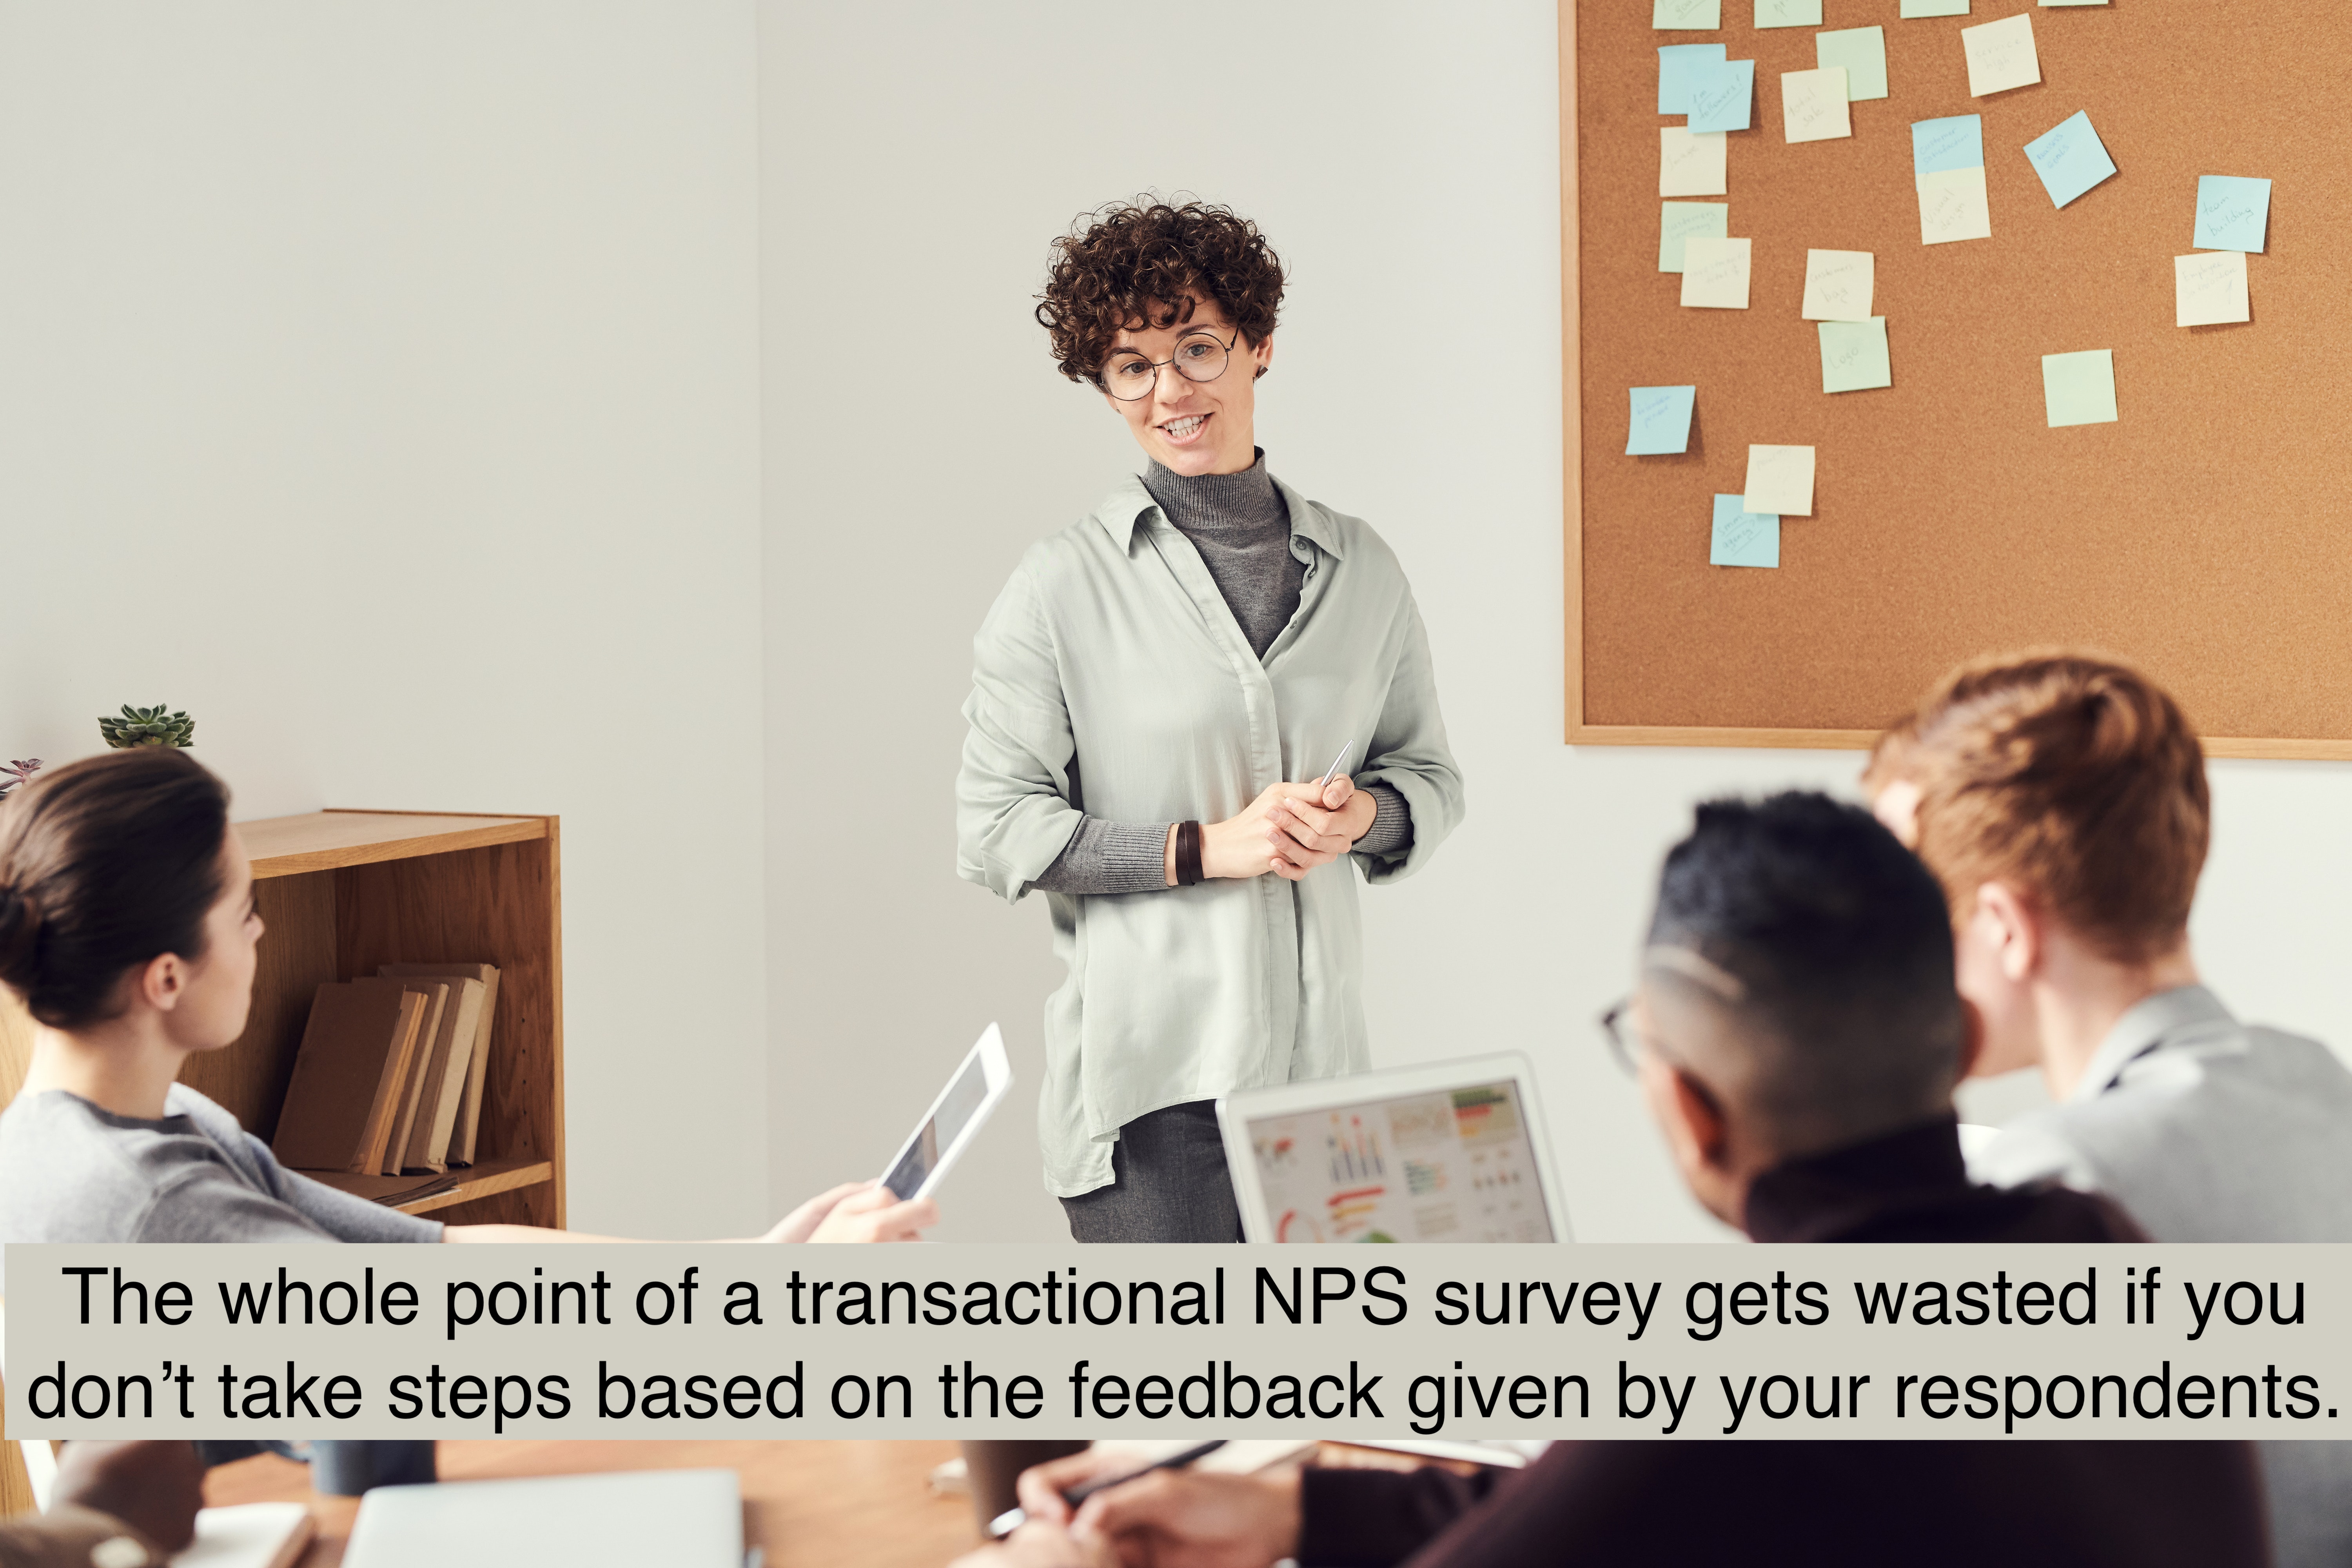 The whole point of a survey gets wasted if you don't take steps based on the feedback given by your respondents.